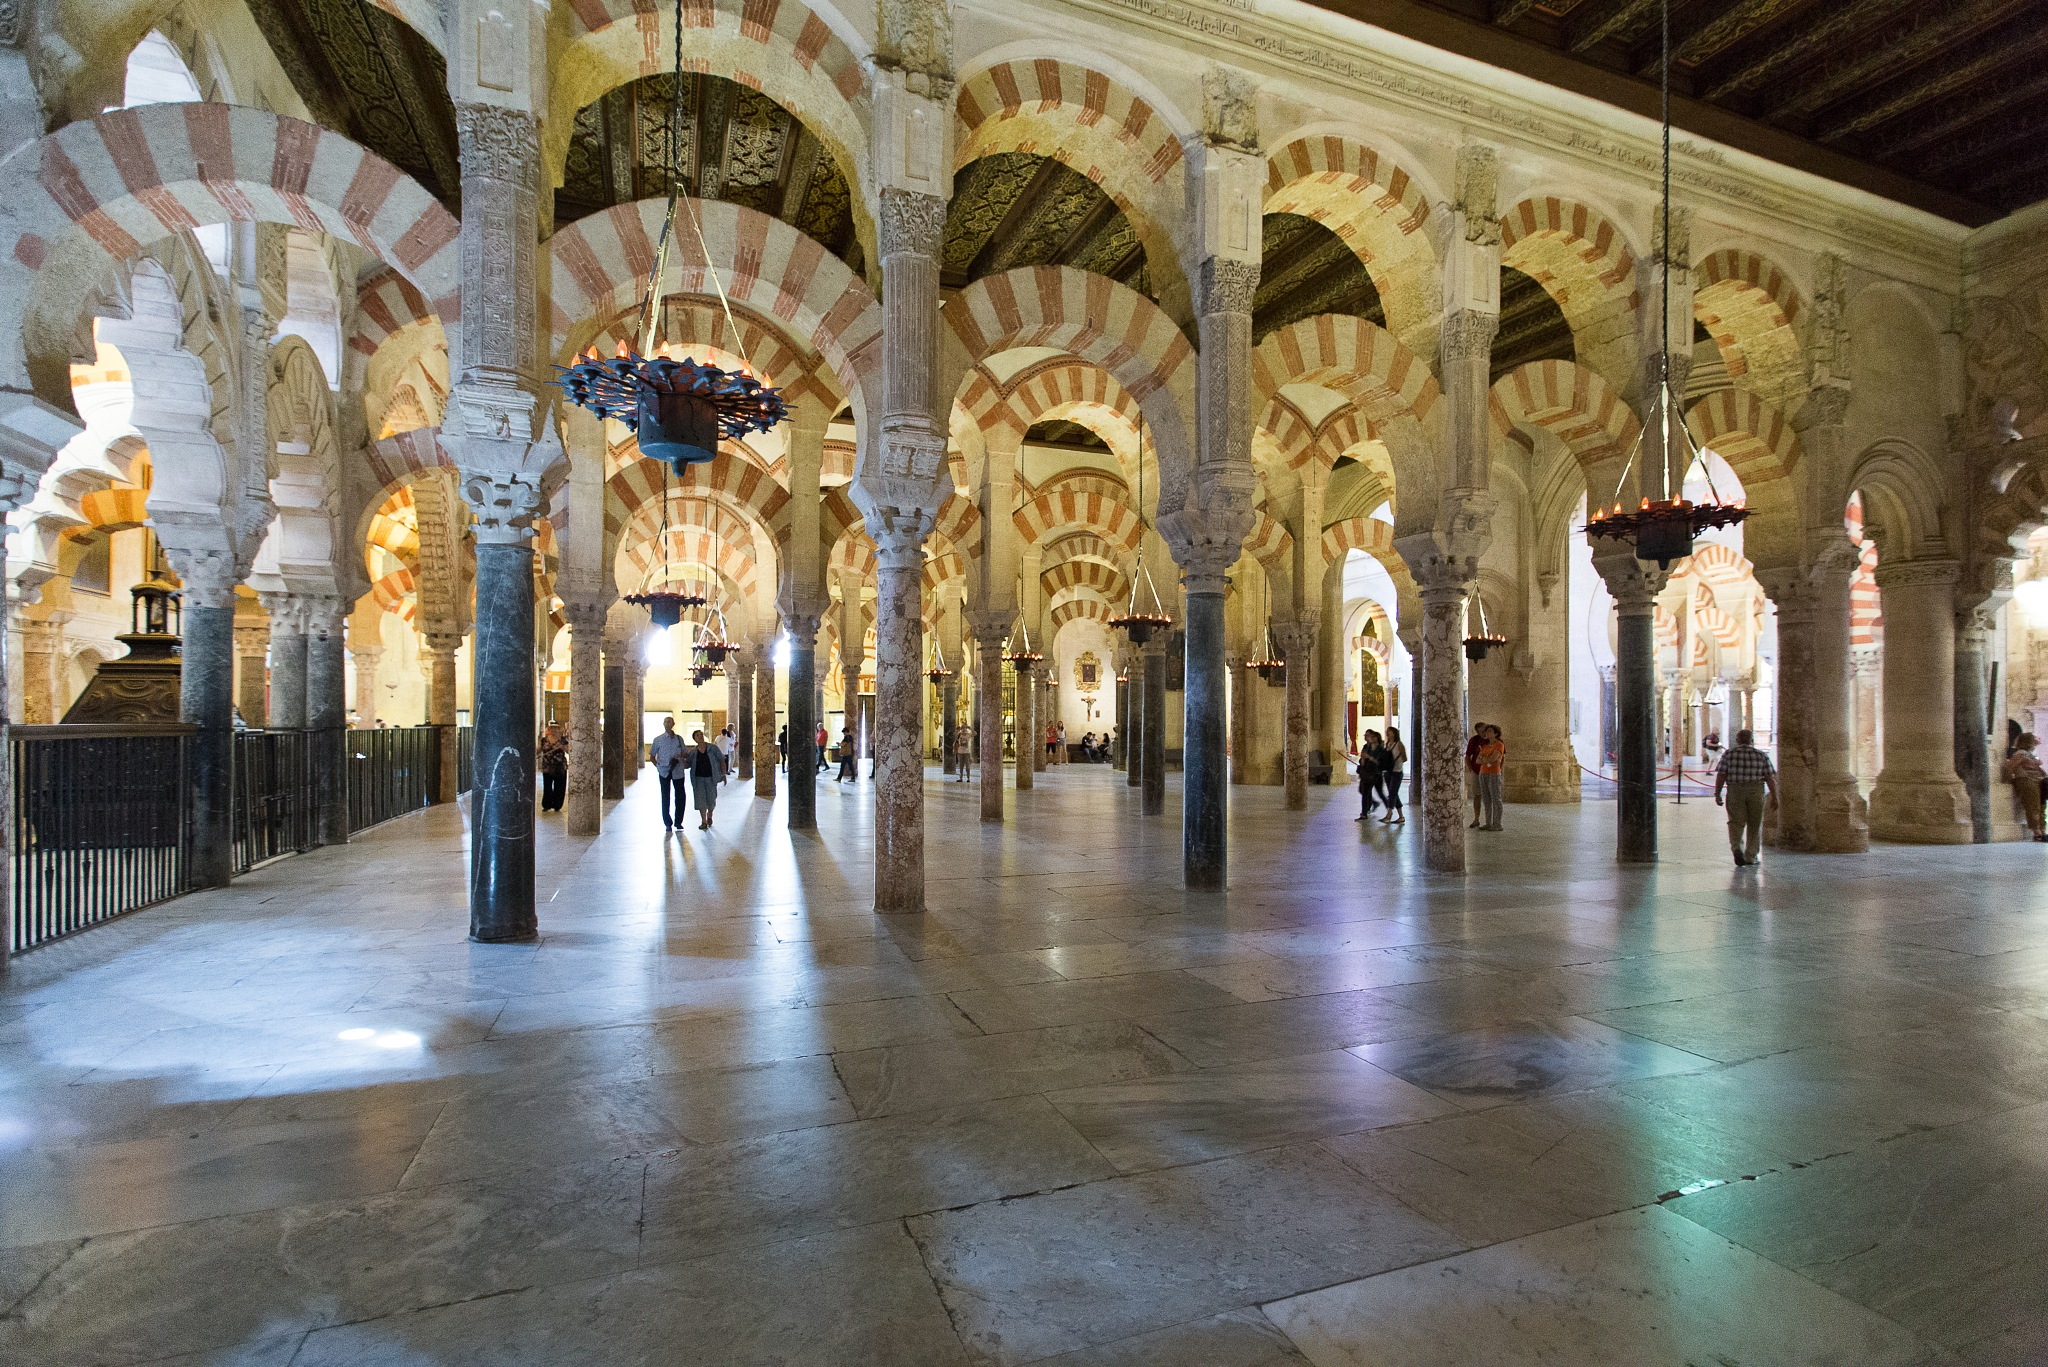 Cordoba, Andalusia, Spain by stephannierop